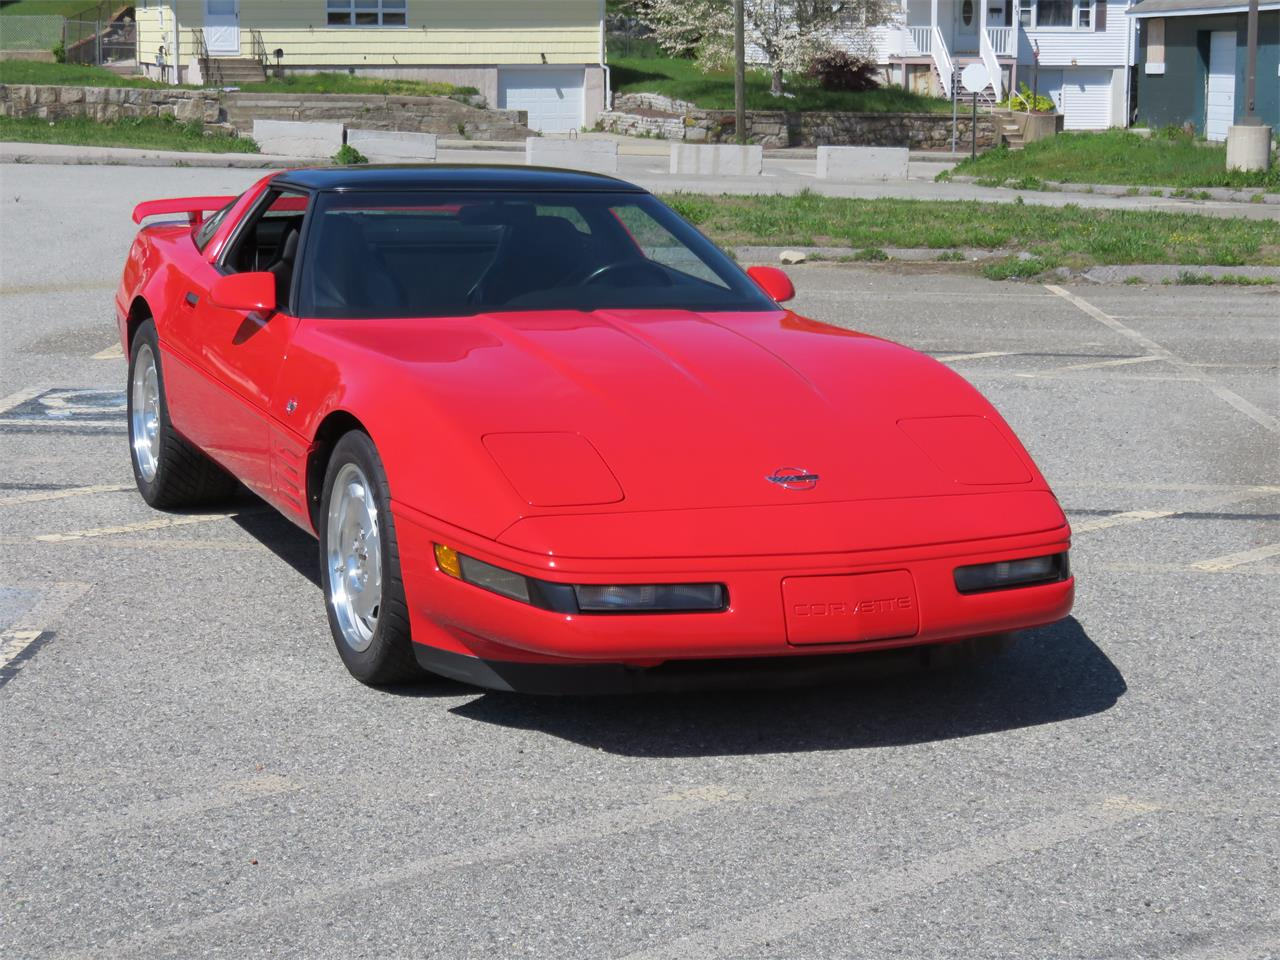 Large Picture of 1994 Corvette - $23,900.00 Offered by a Private Seller - LFZL